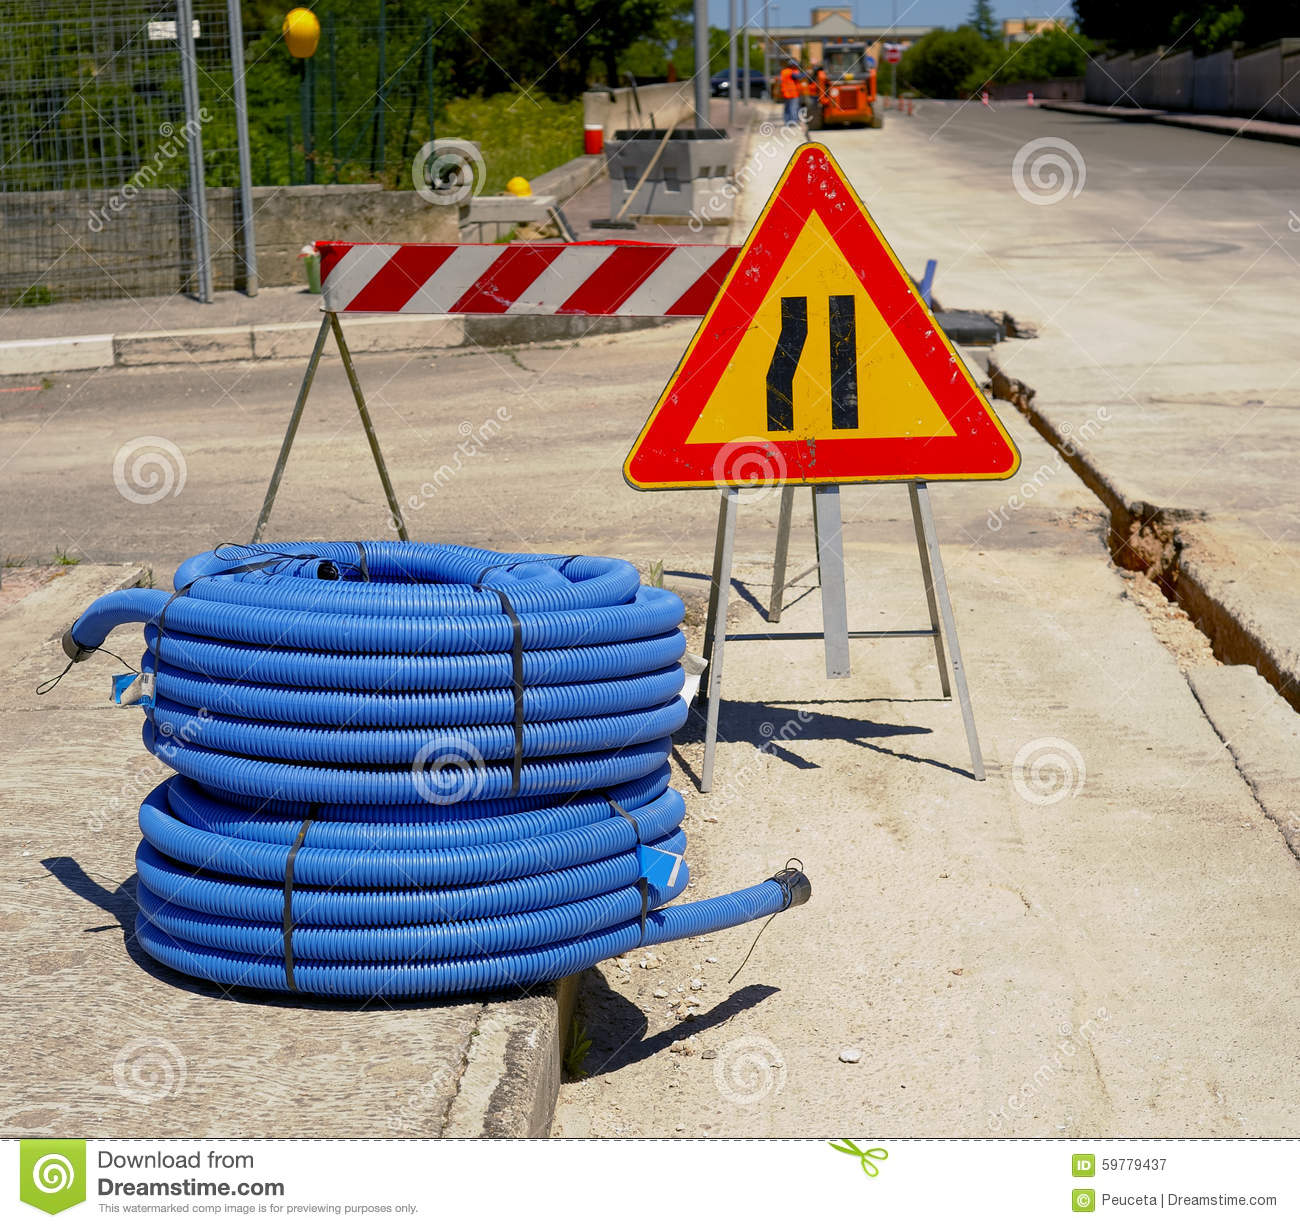 Roll of corrugated conduit stock image  Image of canal